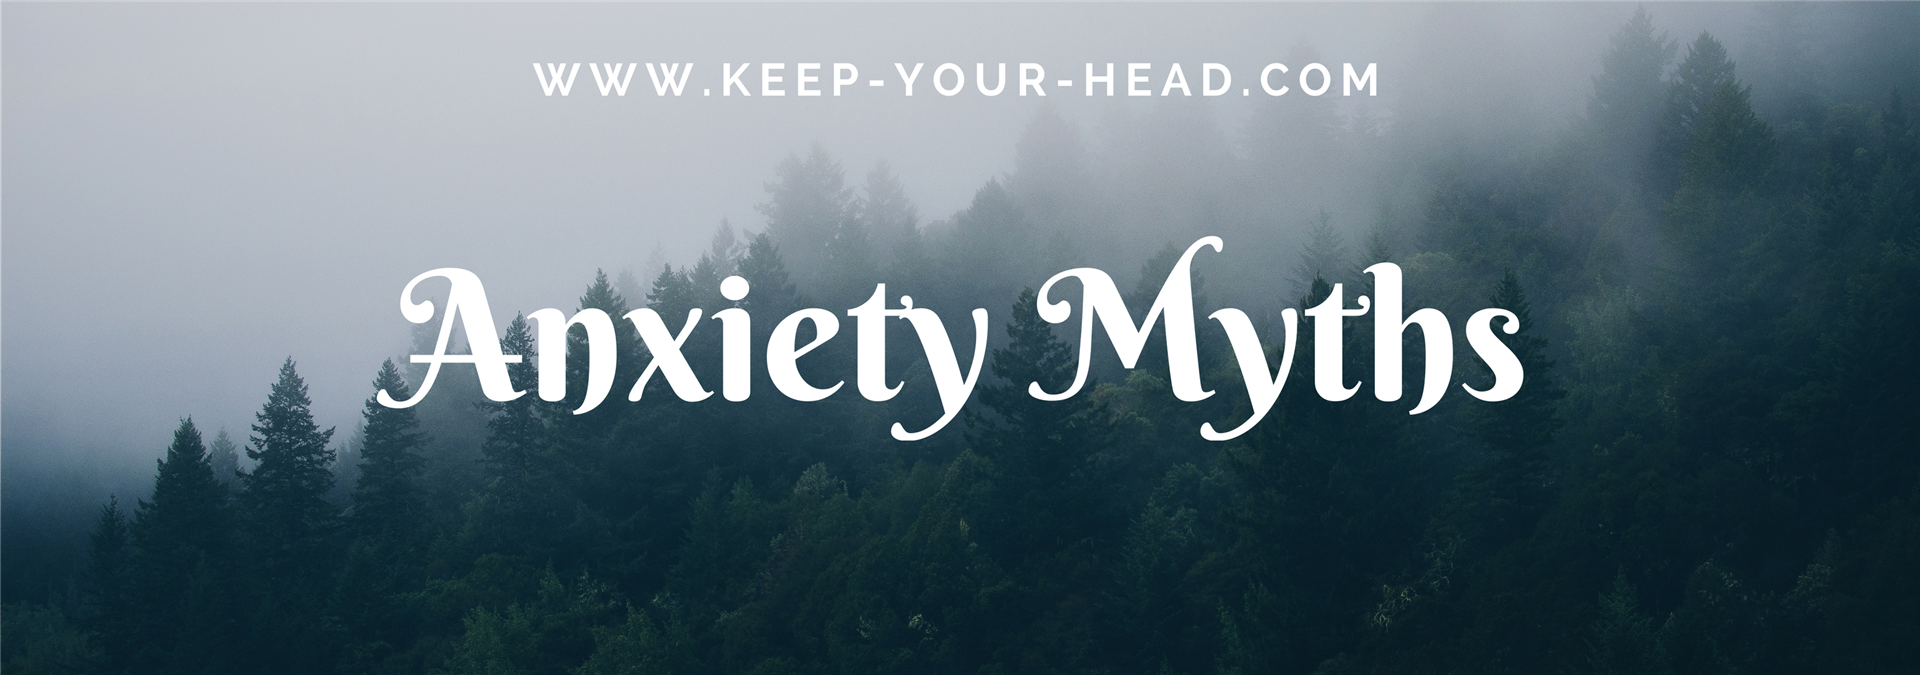 Anxiety Myths Blog Post Banner